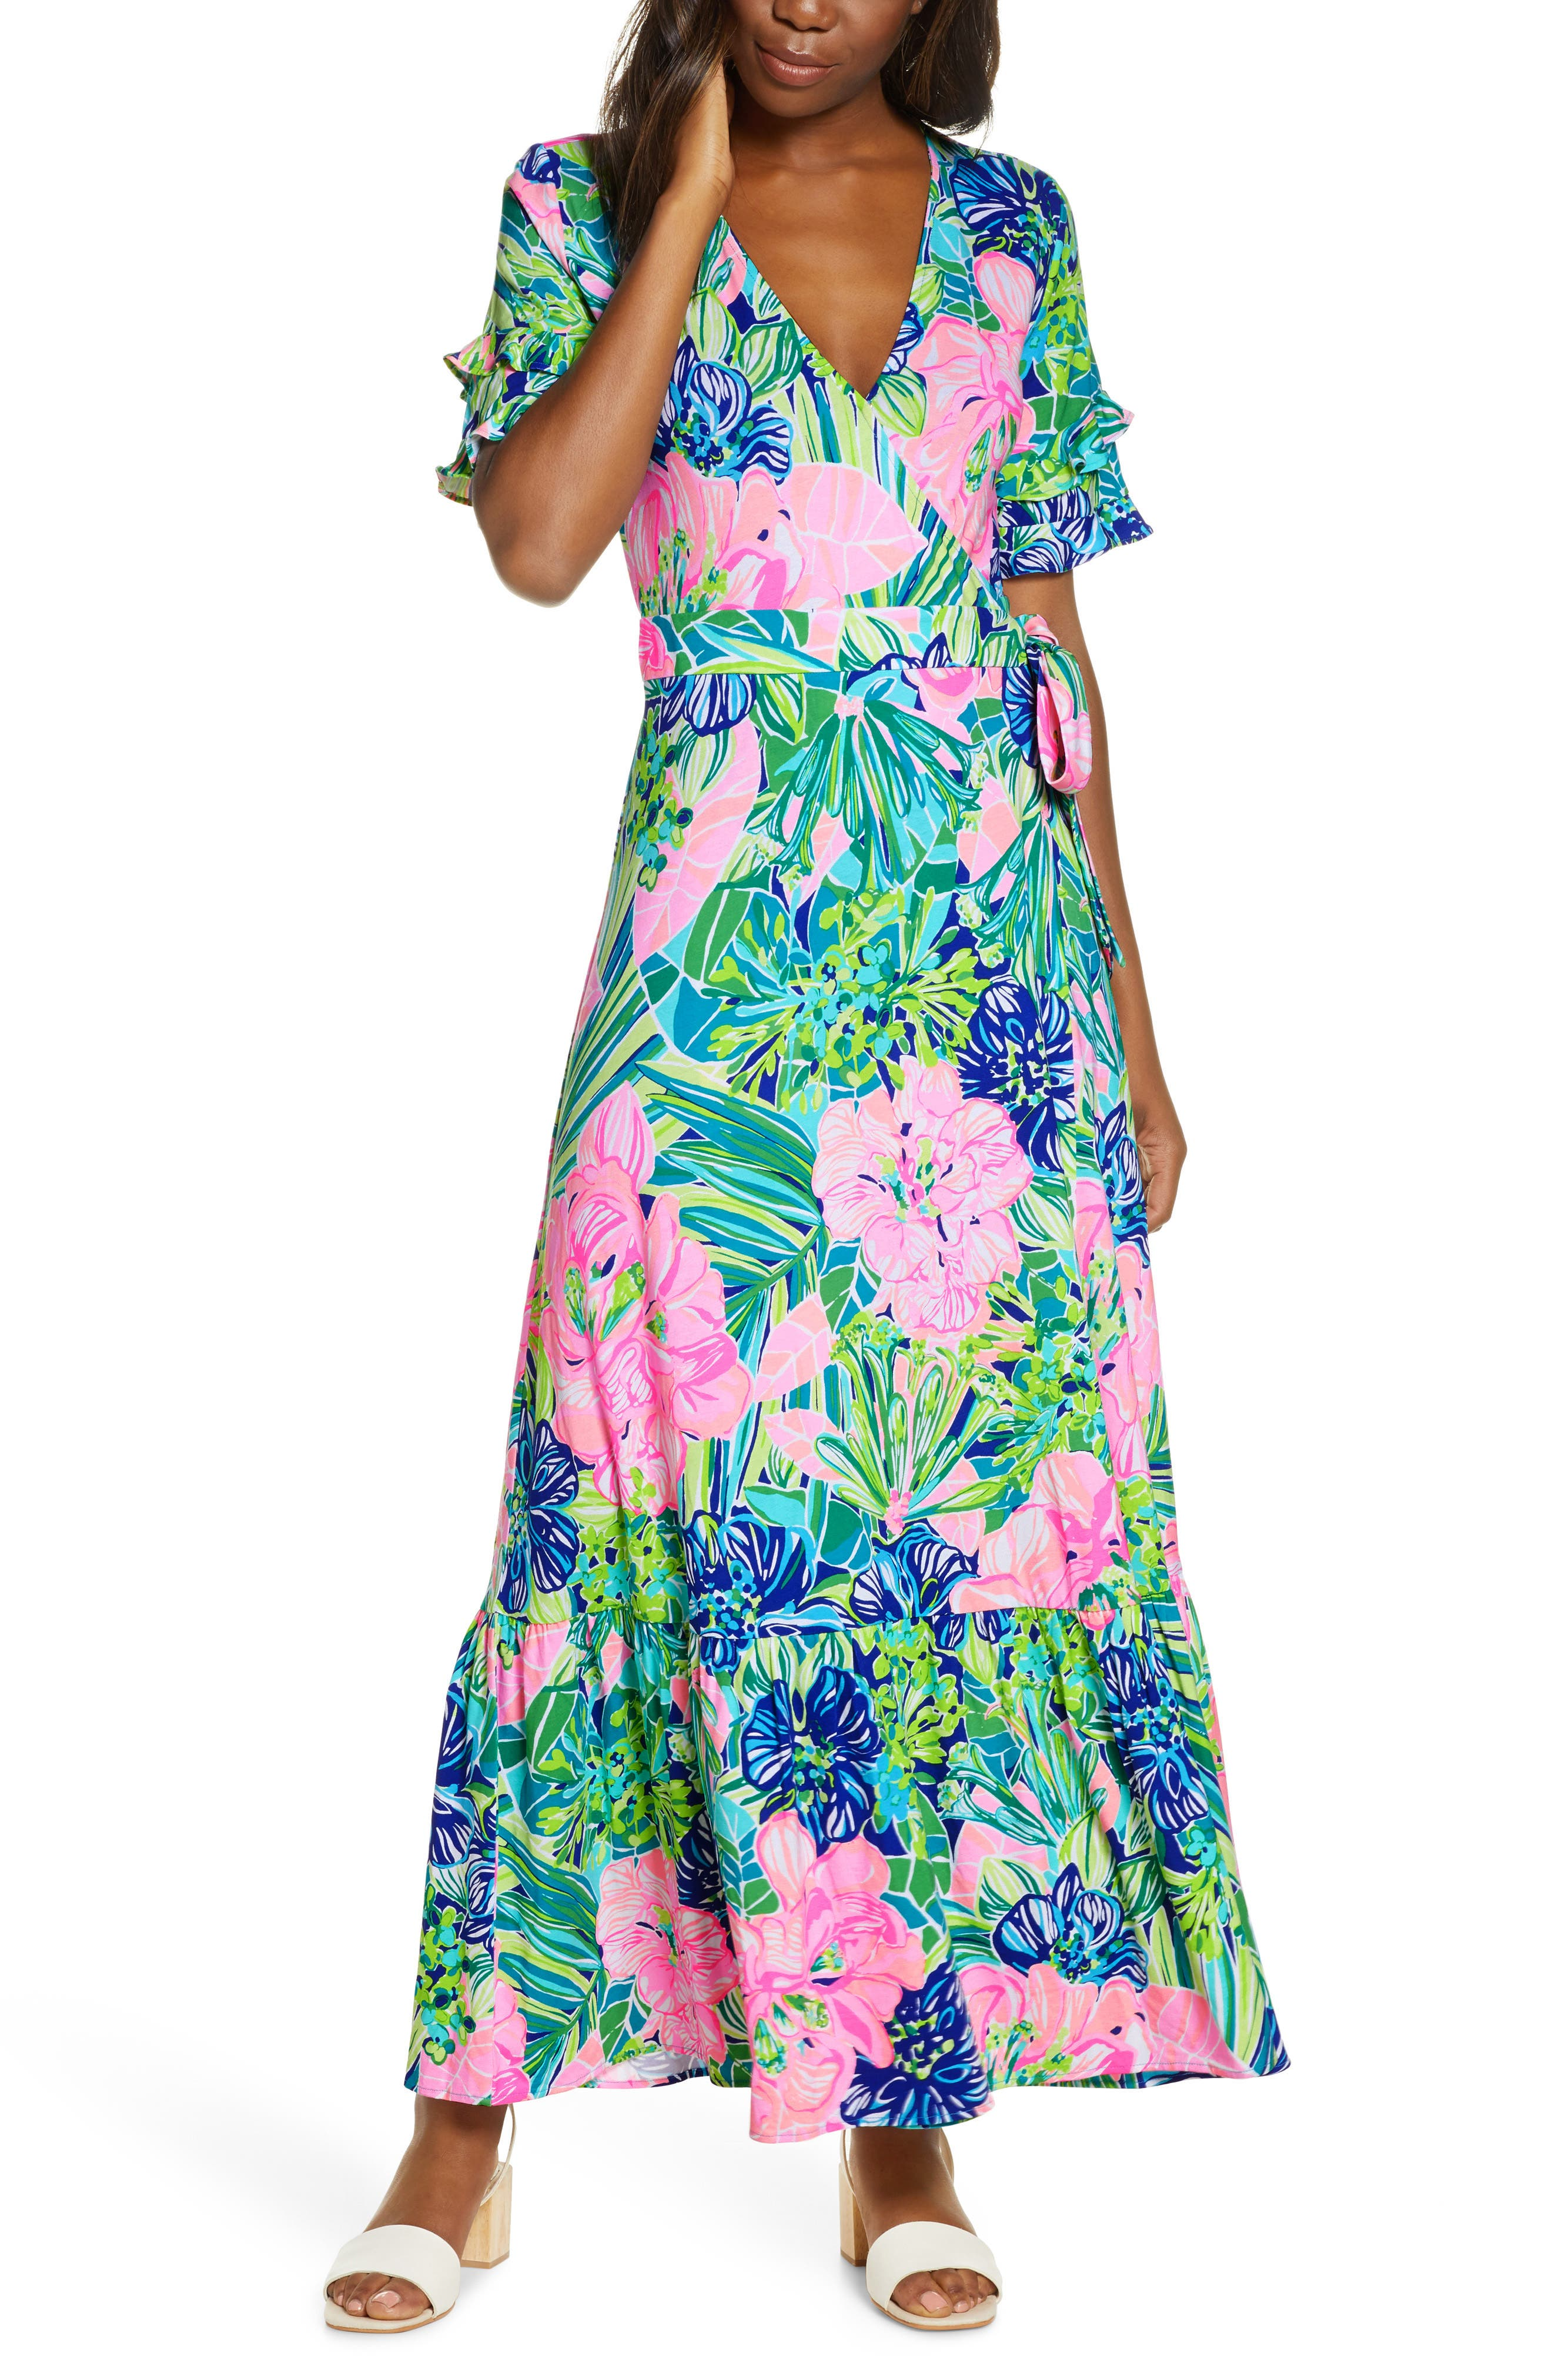 50 Vintage Inspired Clothing Brands & Stores Womens Lilly Pulitzer Emmerson Wrap Maxi Dress $218.00 AT vintagedancer.com